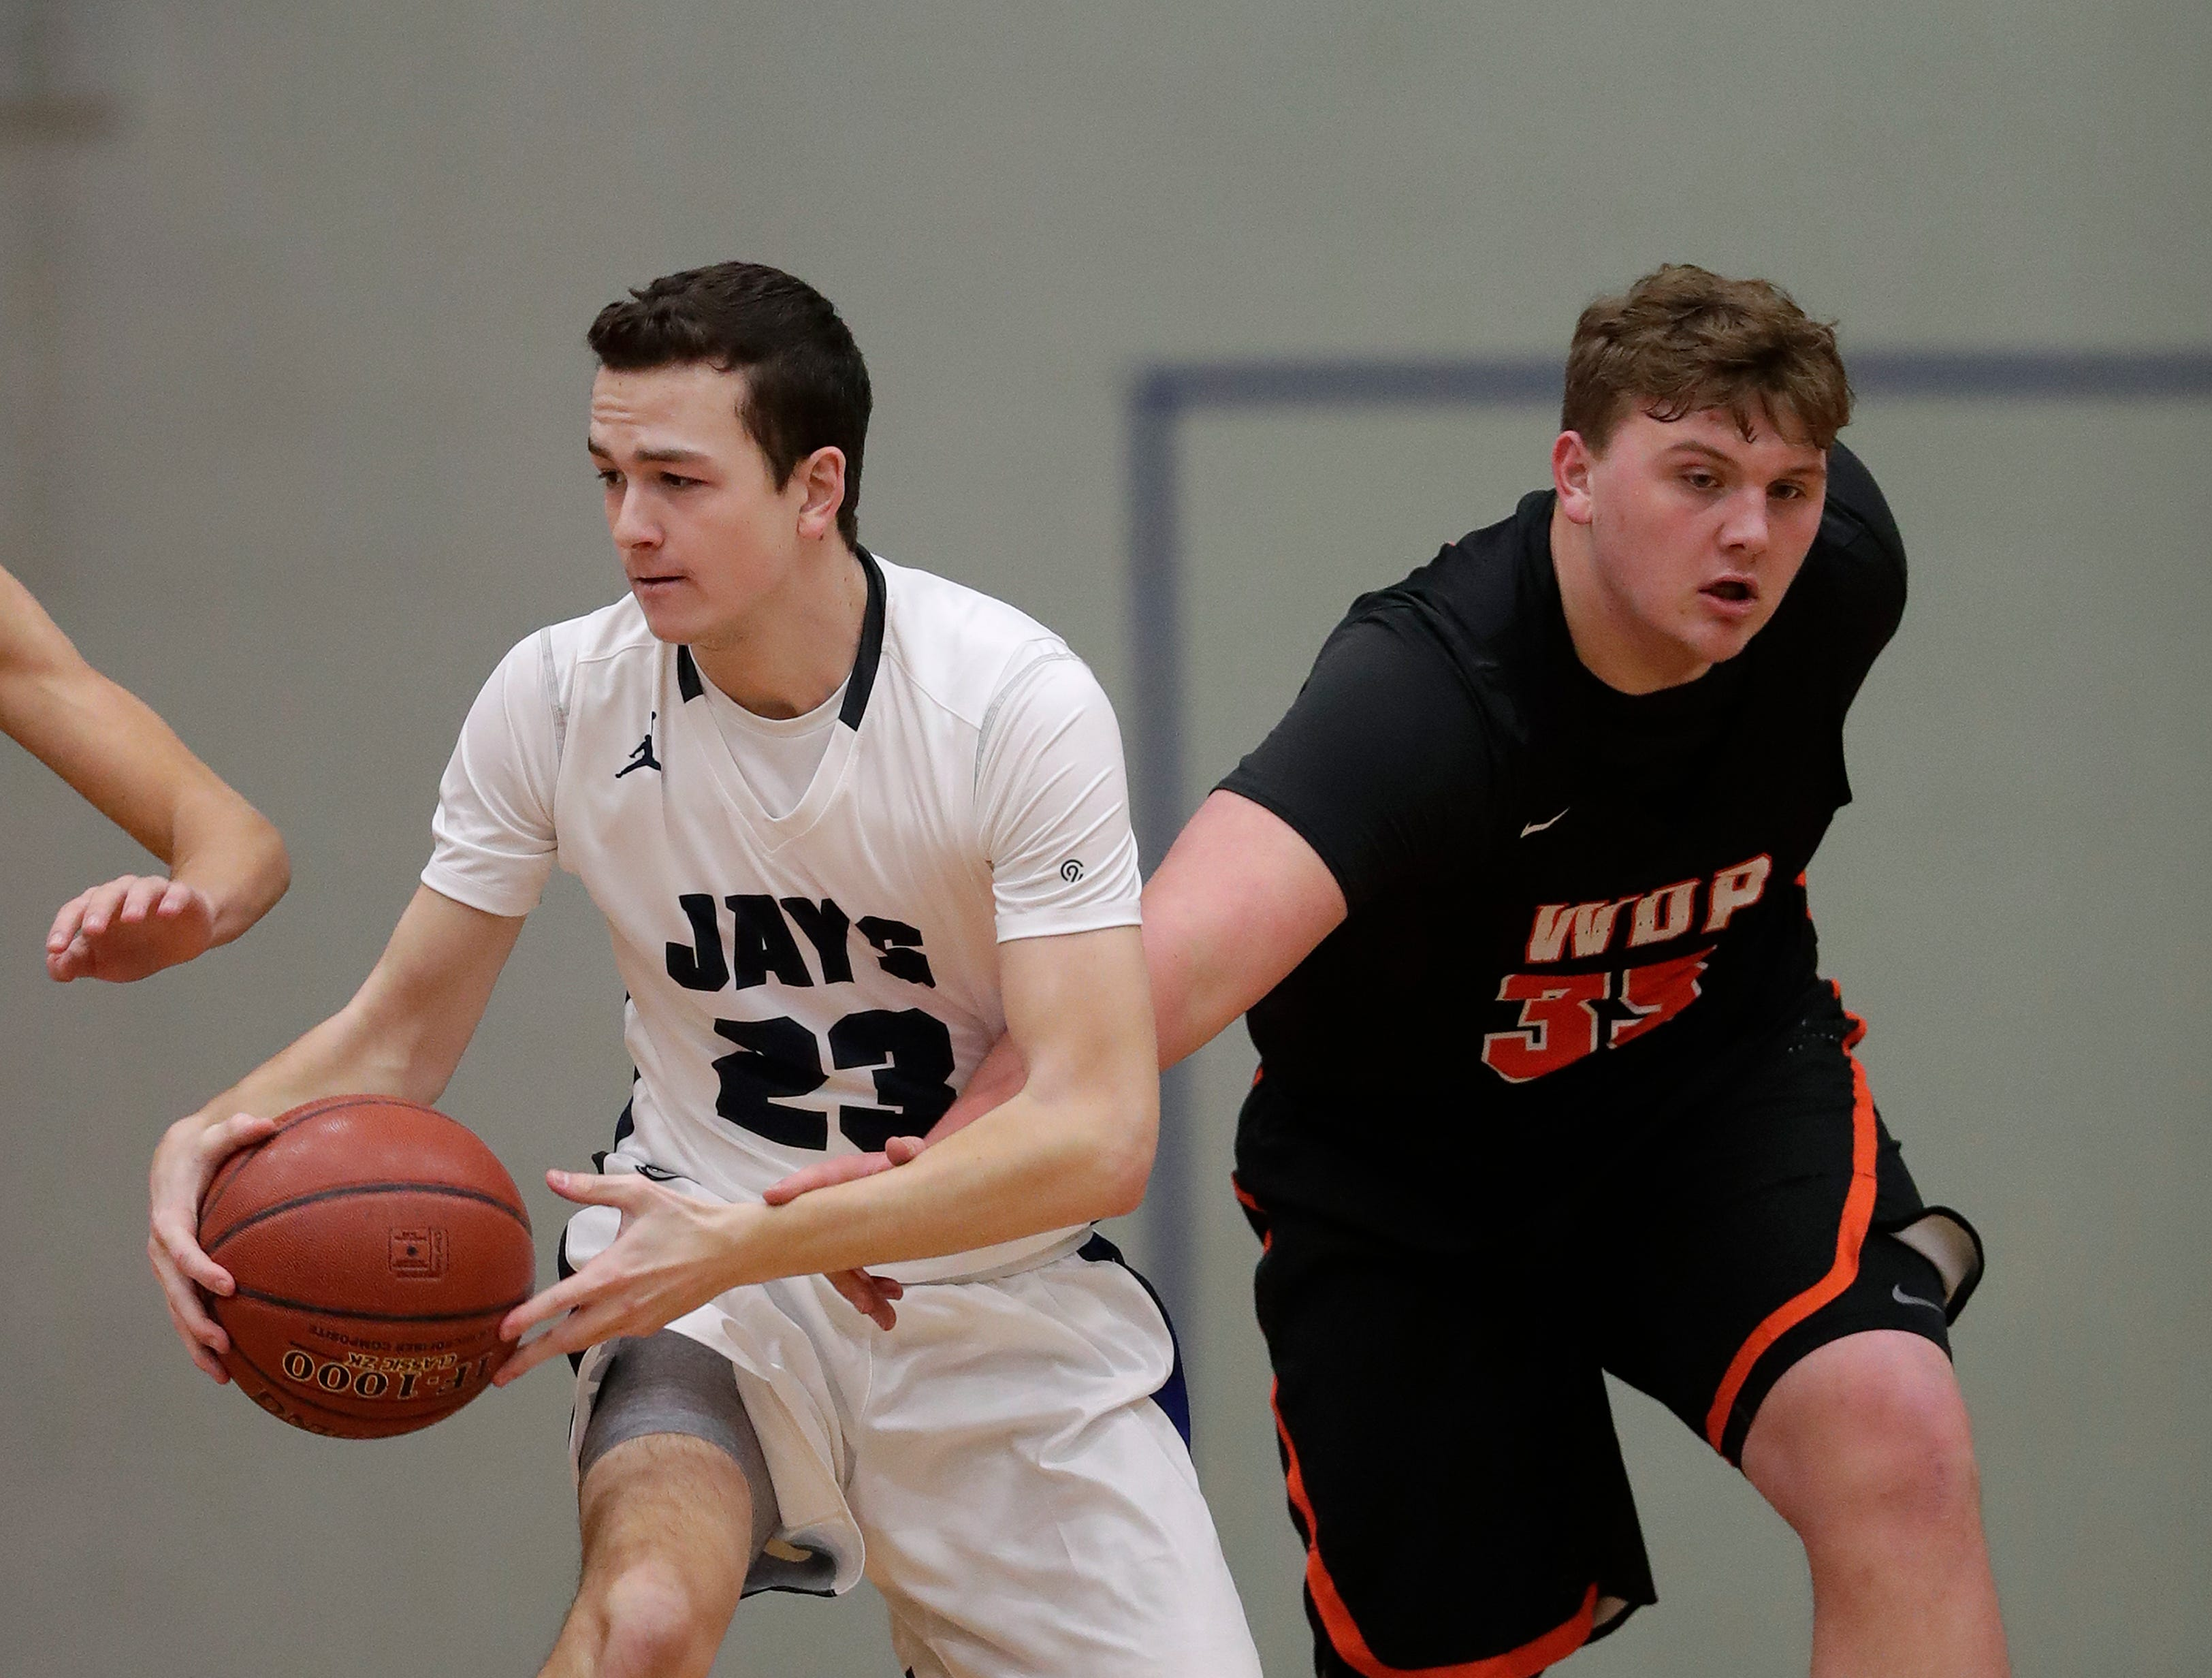 Menasha High School's Duncan Dotterweich (23) controls the ball against West De Pere High School's Kerry Kondanko (35) during their boys basketball game Tuesday, December 11, 2018, in Menasha, Wis. Dan Powers/USA TODAY NETWORK-Wisconsin